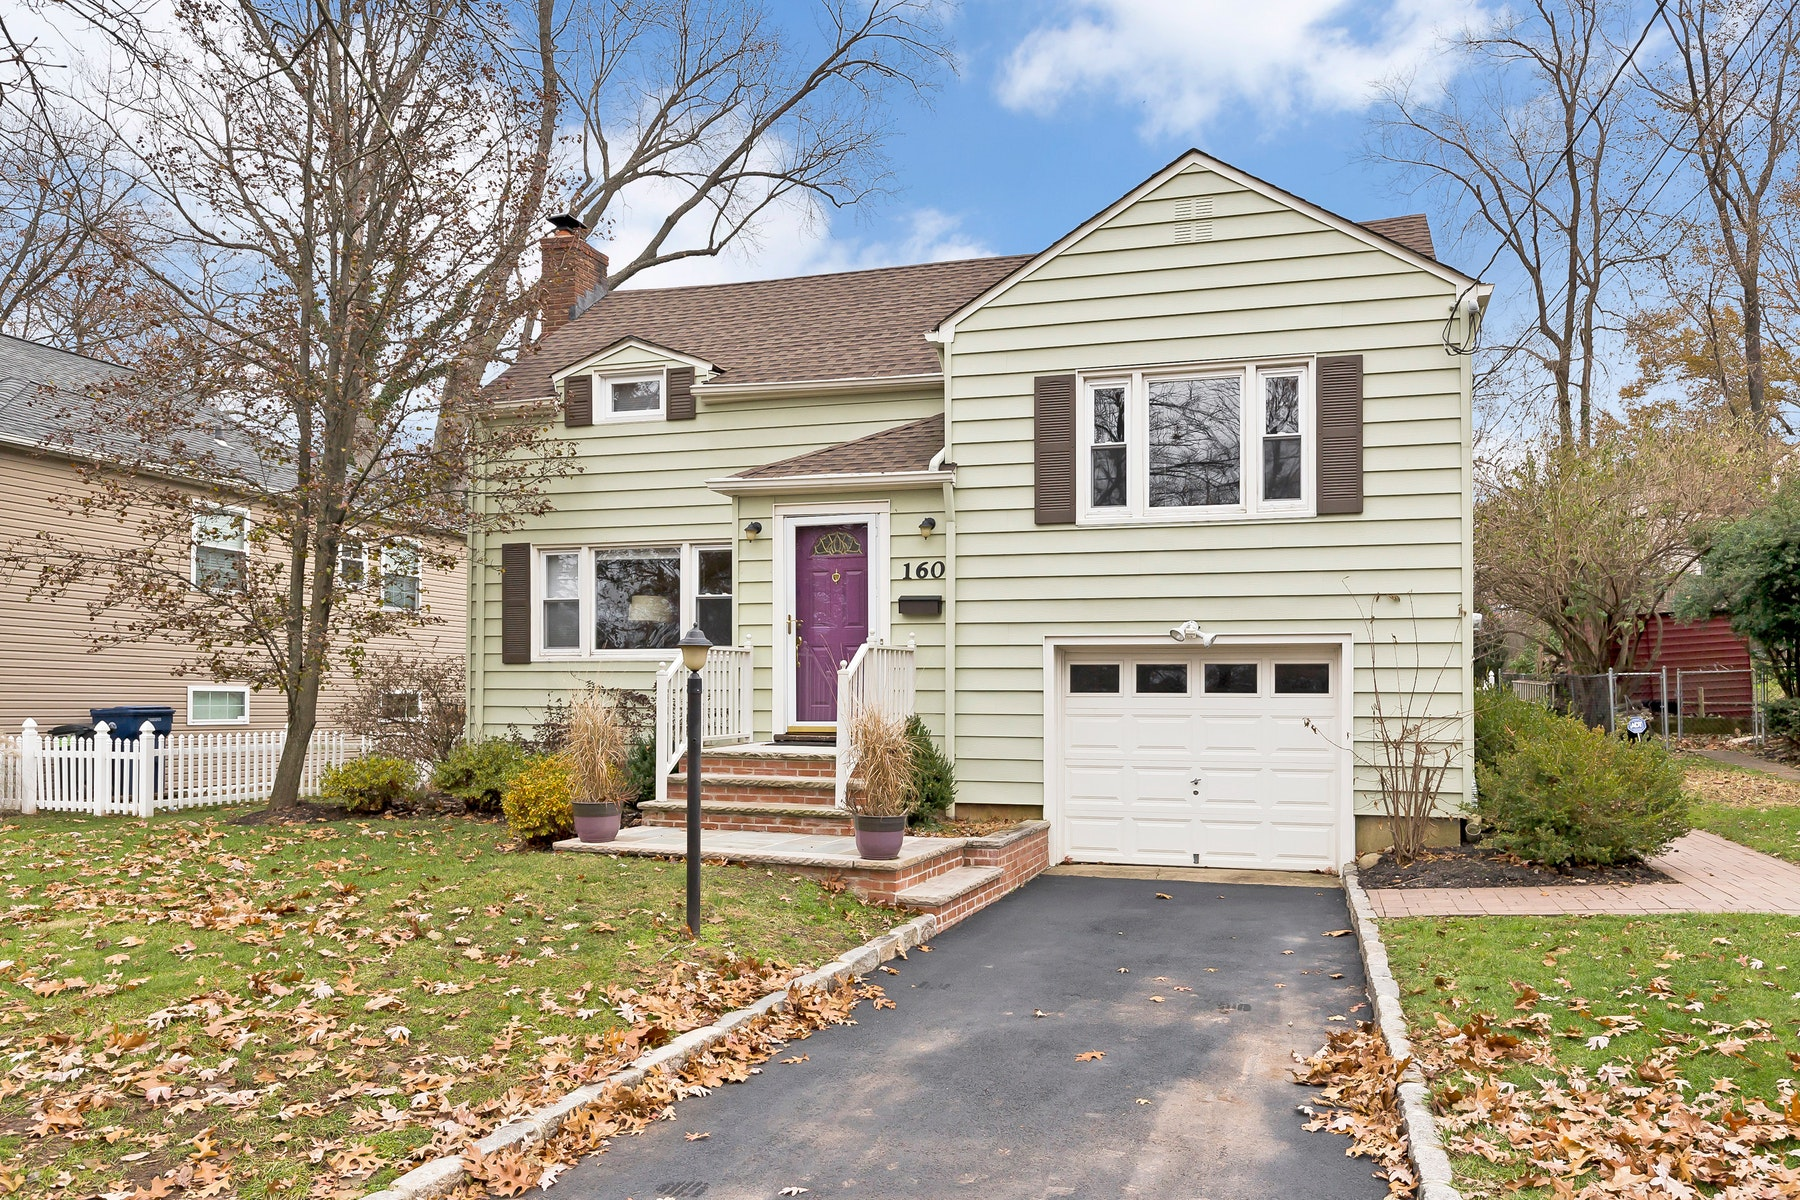 Single Family Home for Sale at Charming Home 160 Marian Ave, Fanwood, New Jersey 07023 United States